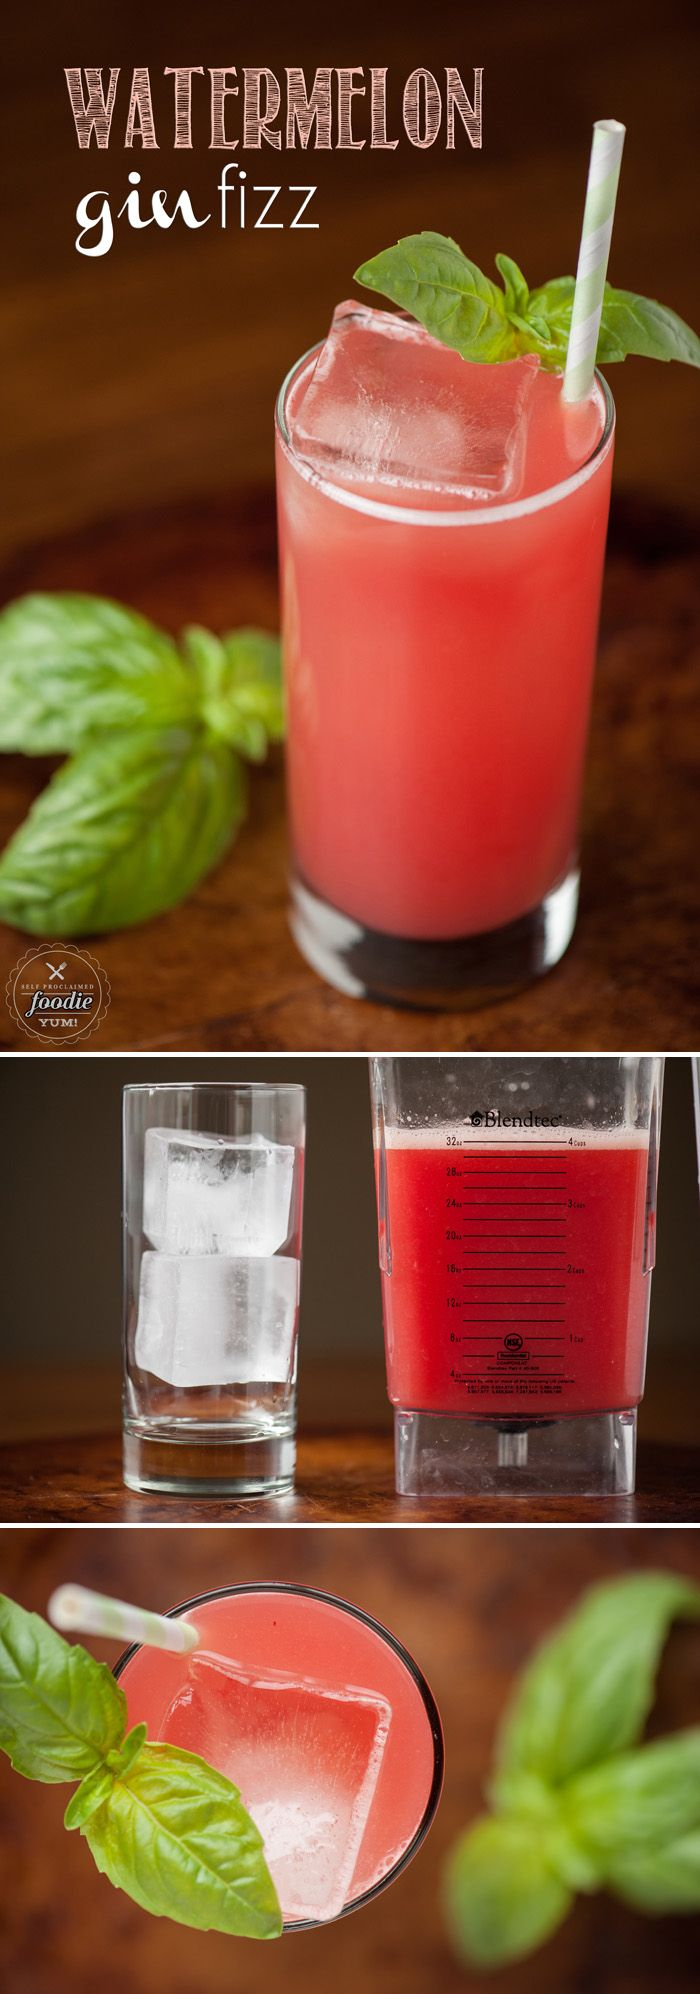 This easy and refreshing Watermelon Gin Fizz made with perfectly sweet fresh juice is the perfect cocktail to enjoy during brunch or a sunny afternoon.